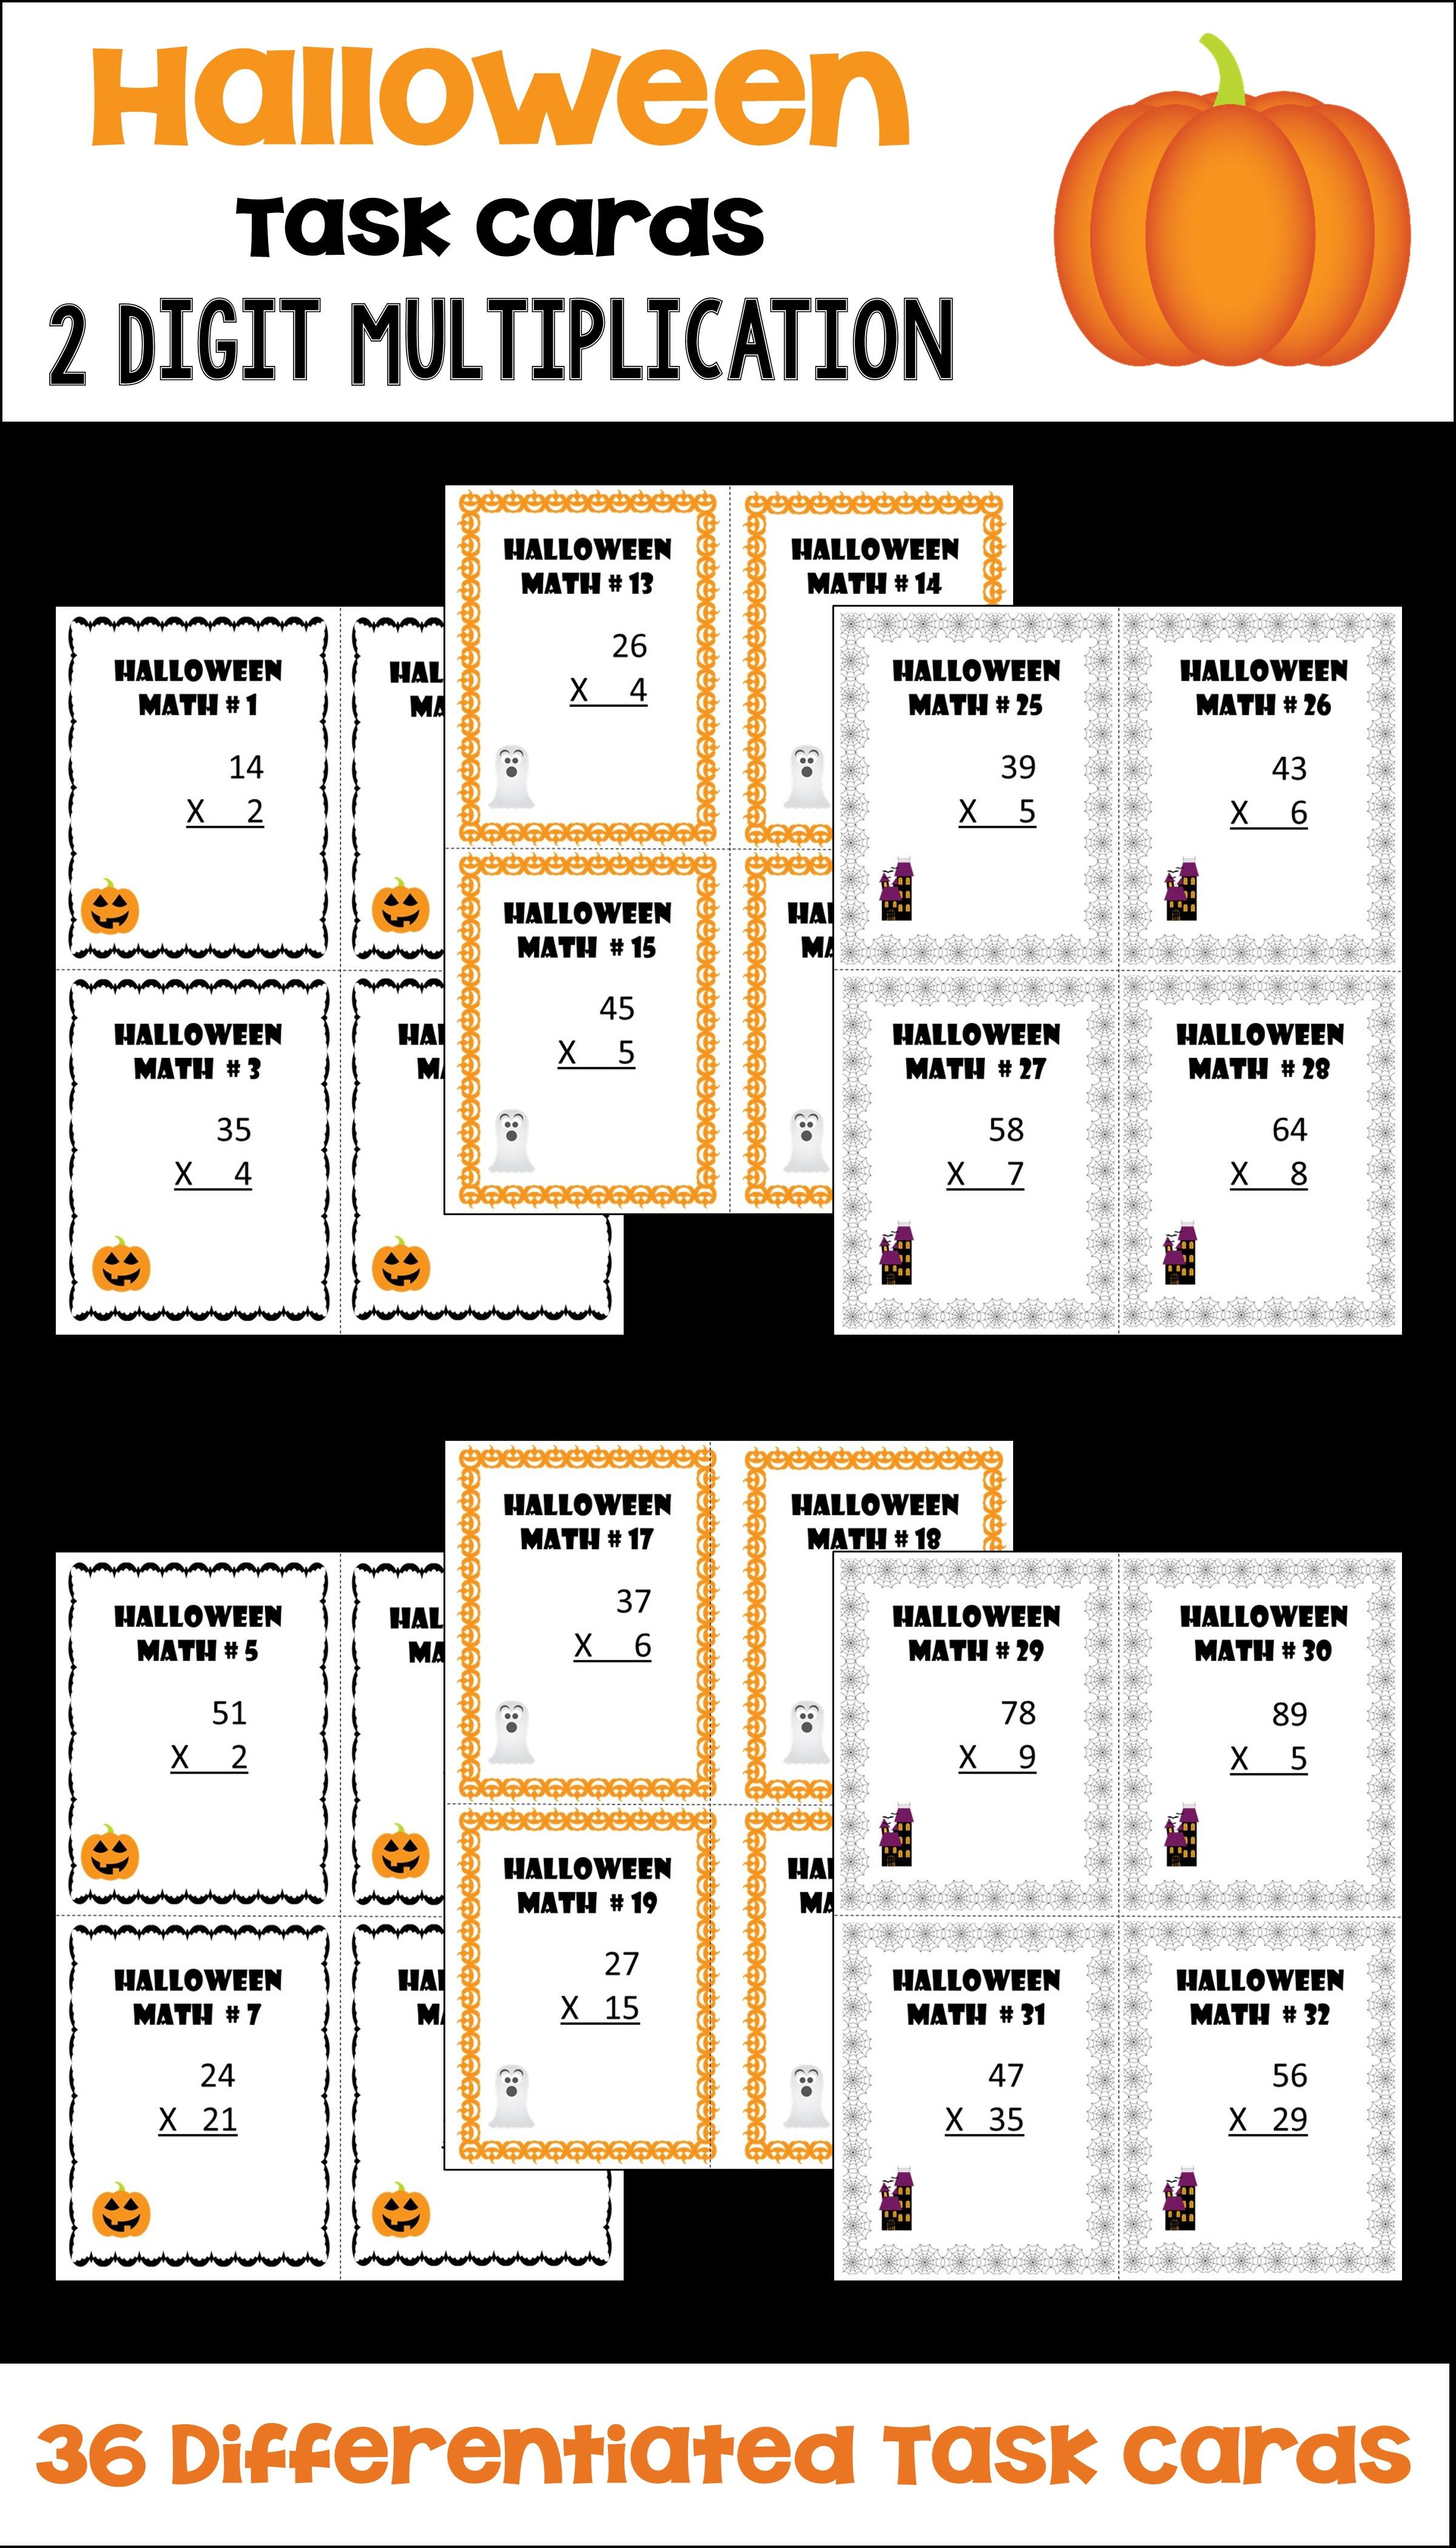 Halloween Math 2 Digit Multiplication Task Cards